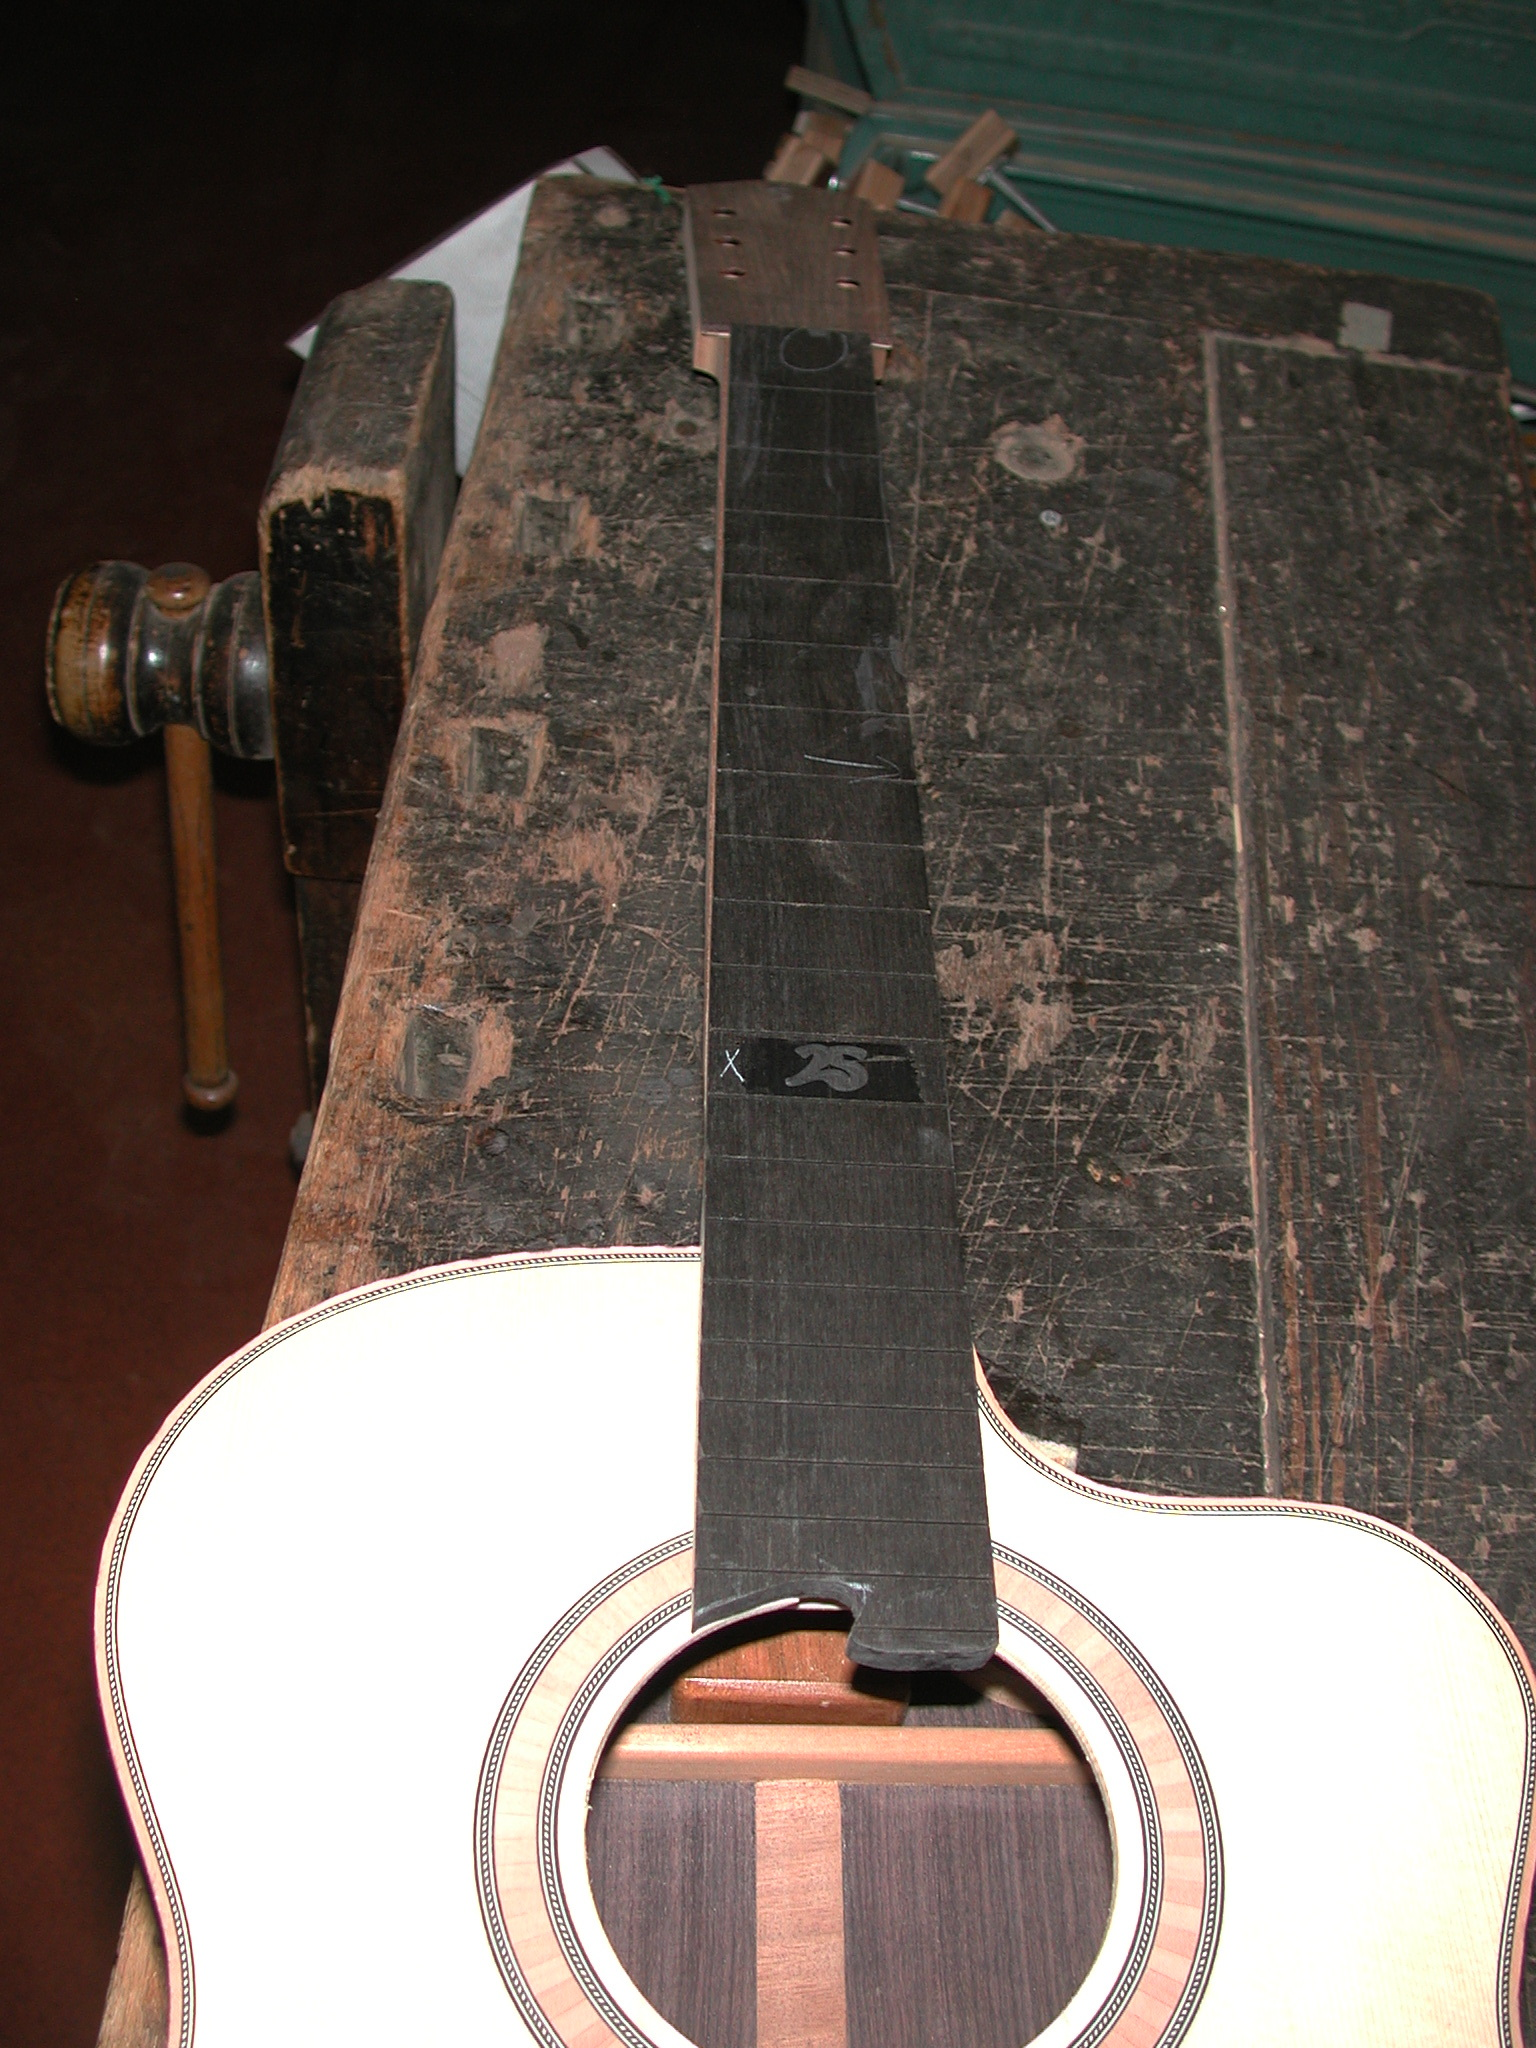 Fingerboard: The fingerboard is applied to the neck.